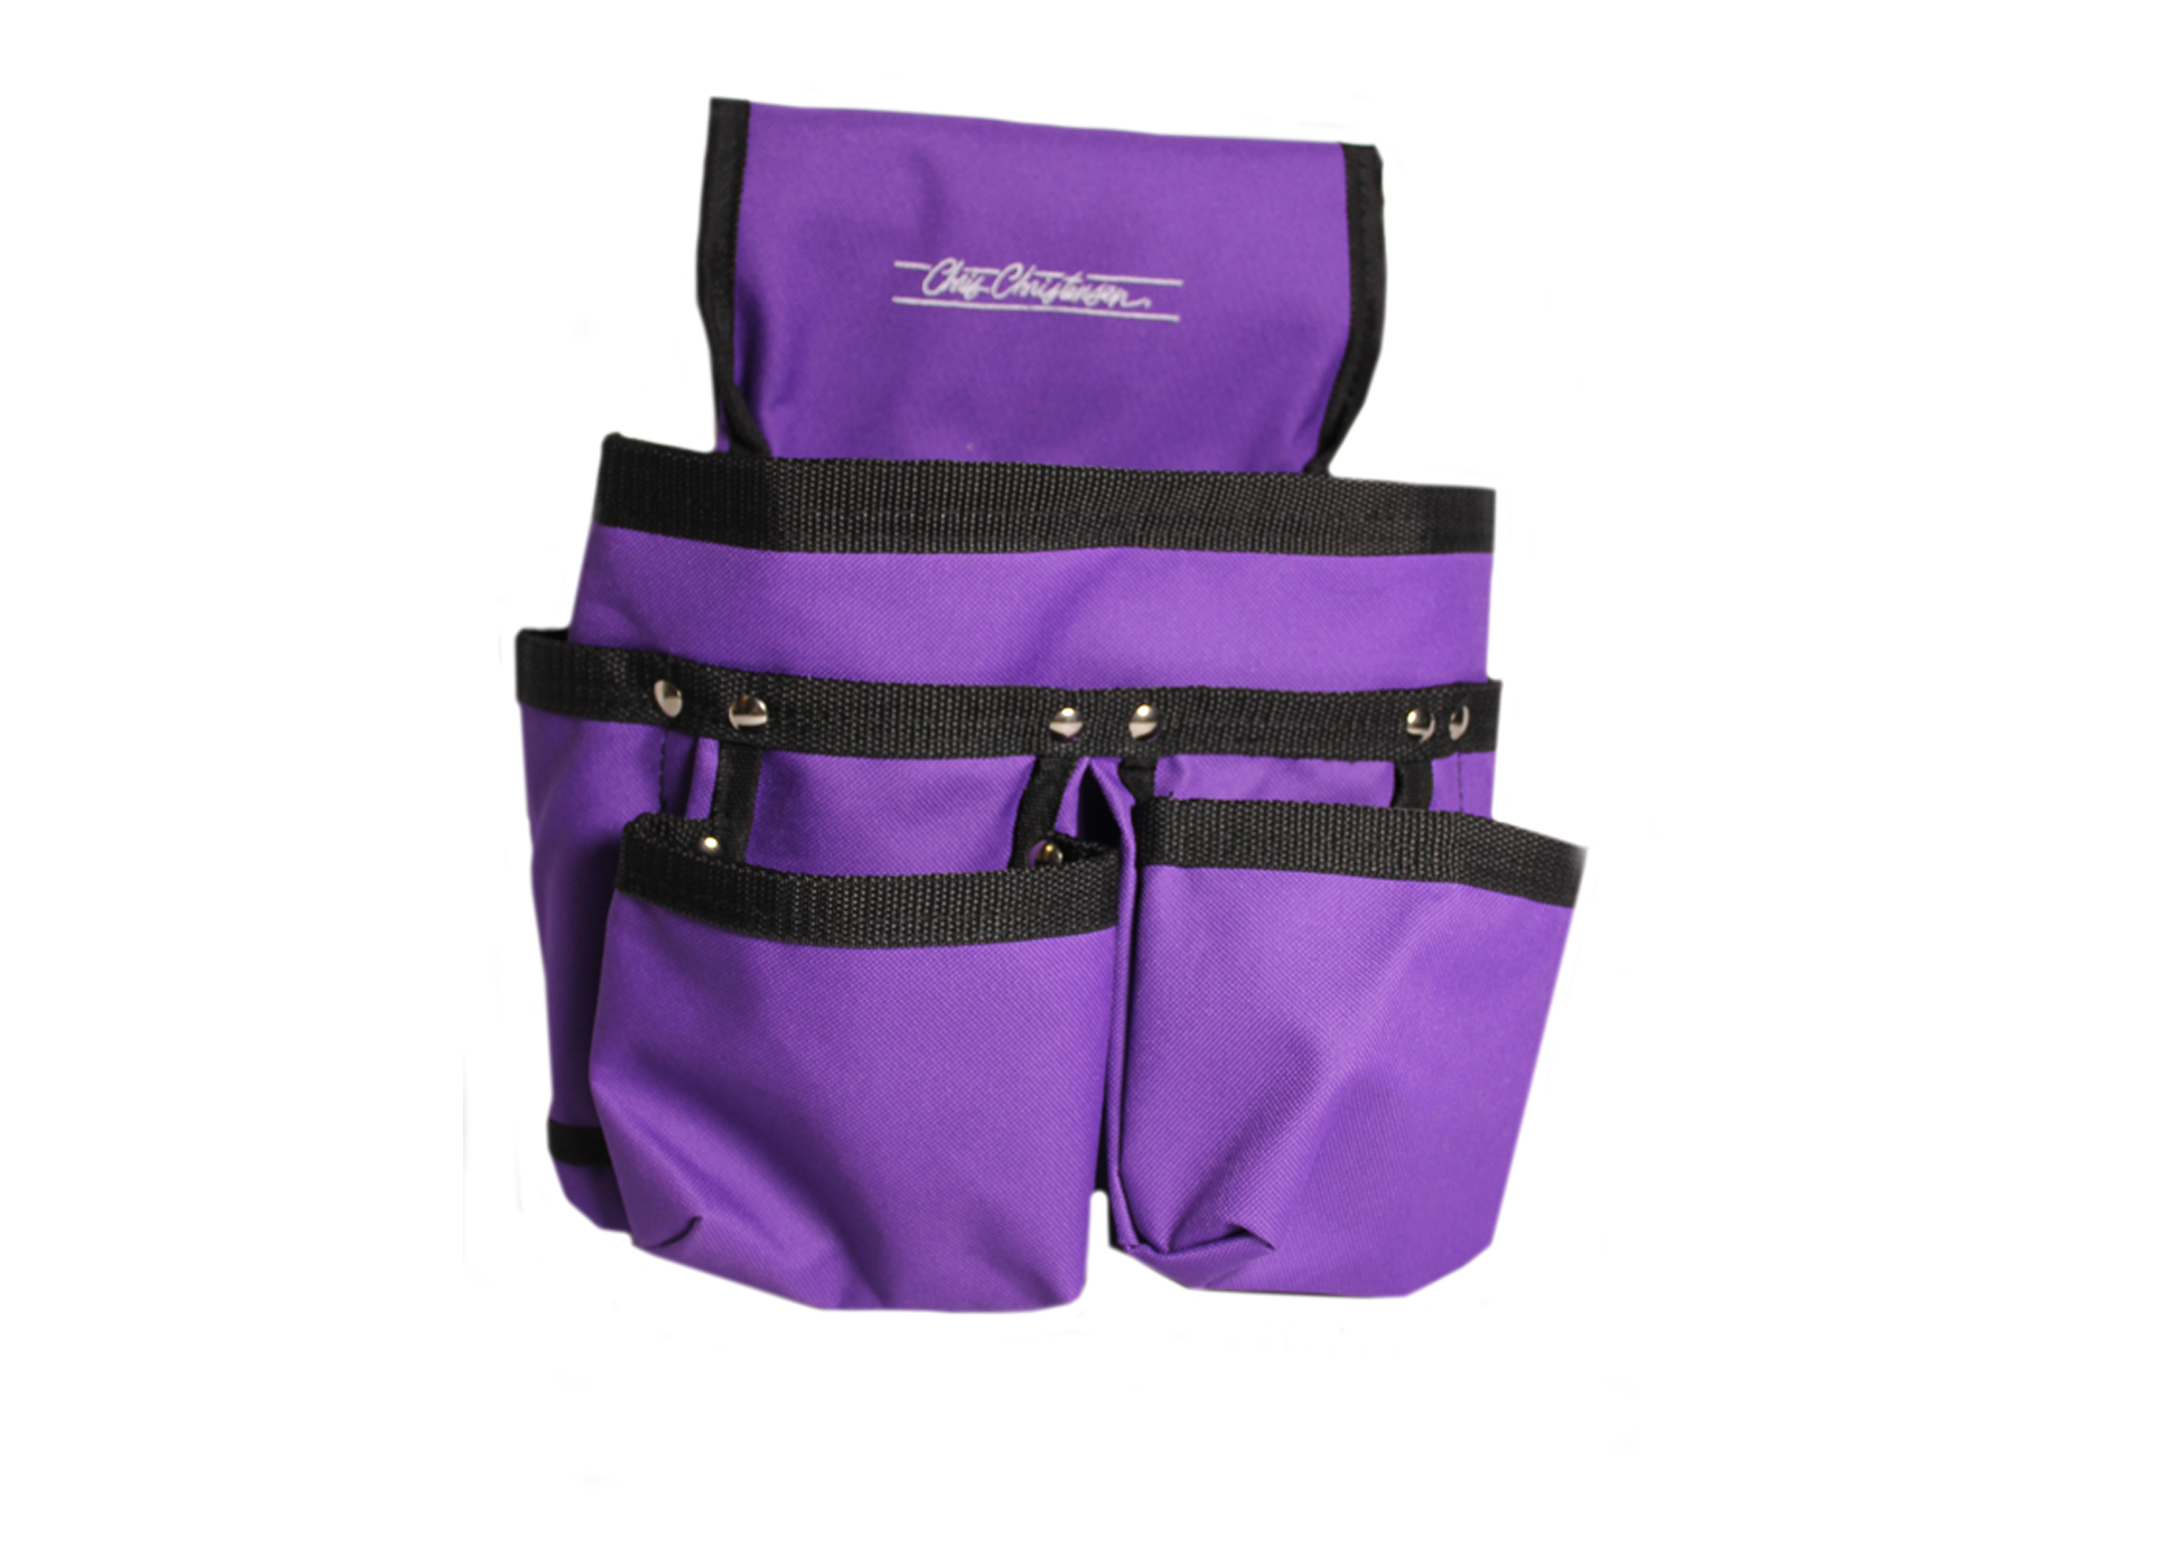 Chris Christensen Systems Large Grooming Tote Violet Sac de voyage